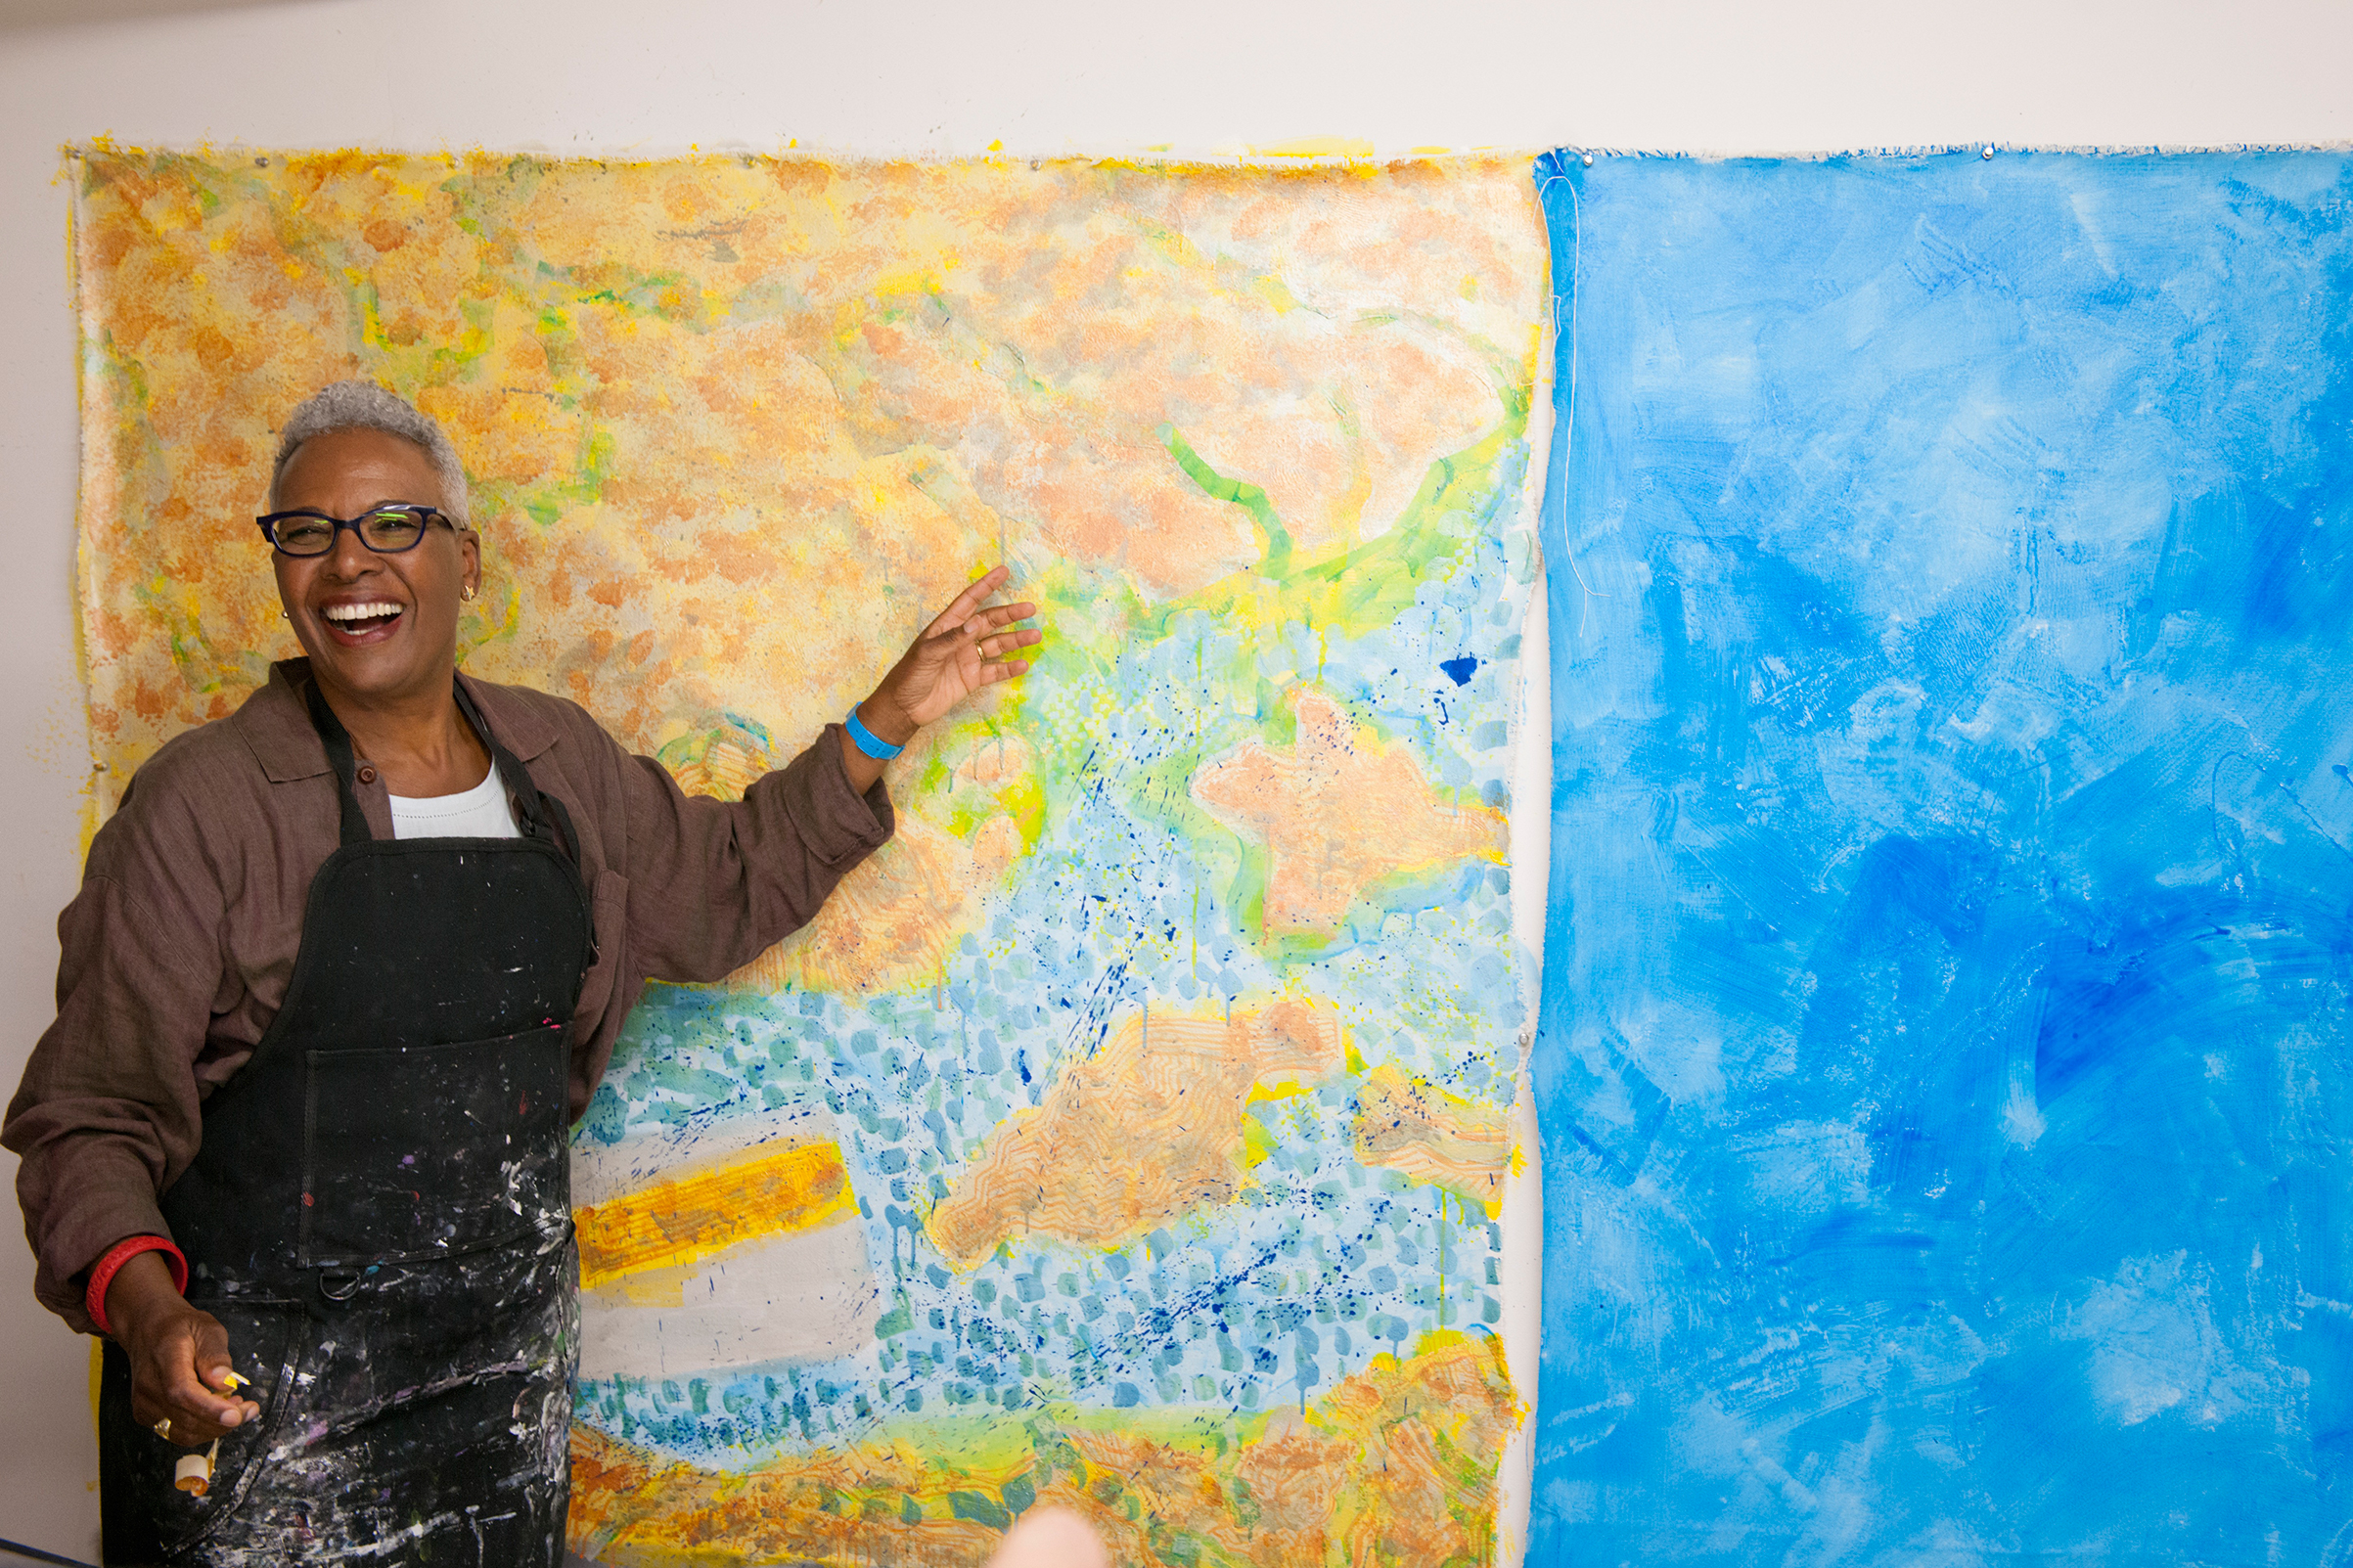 It's all about process: Painter shows off her progress on the canvas